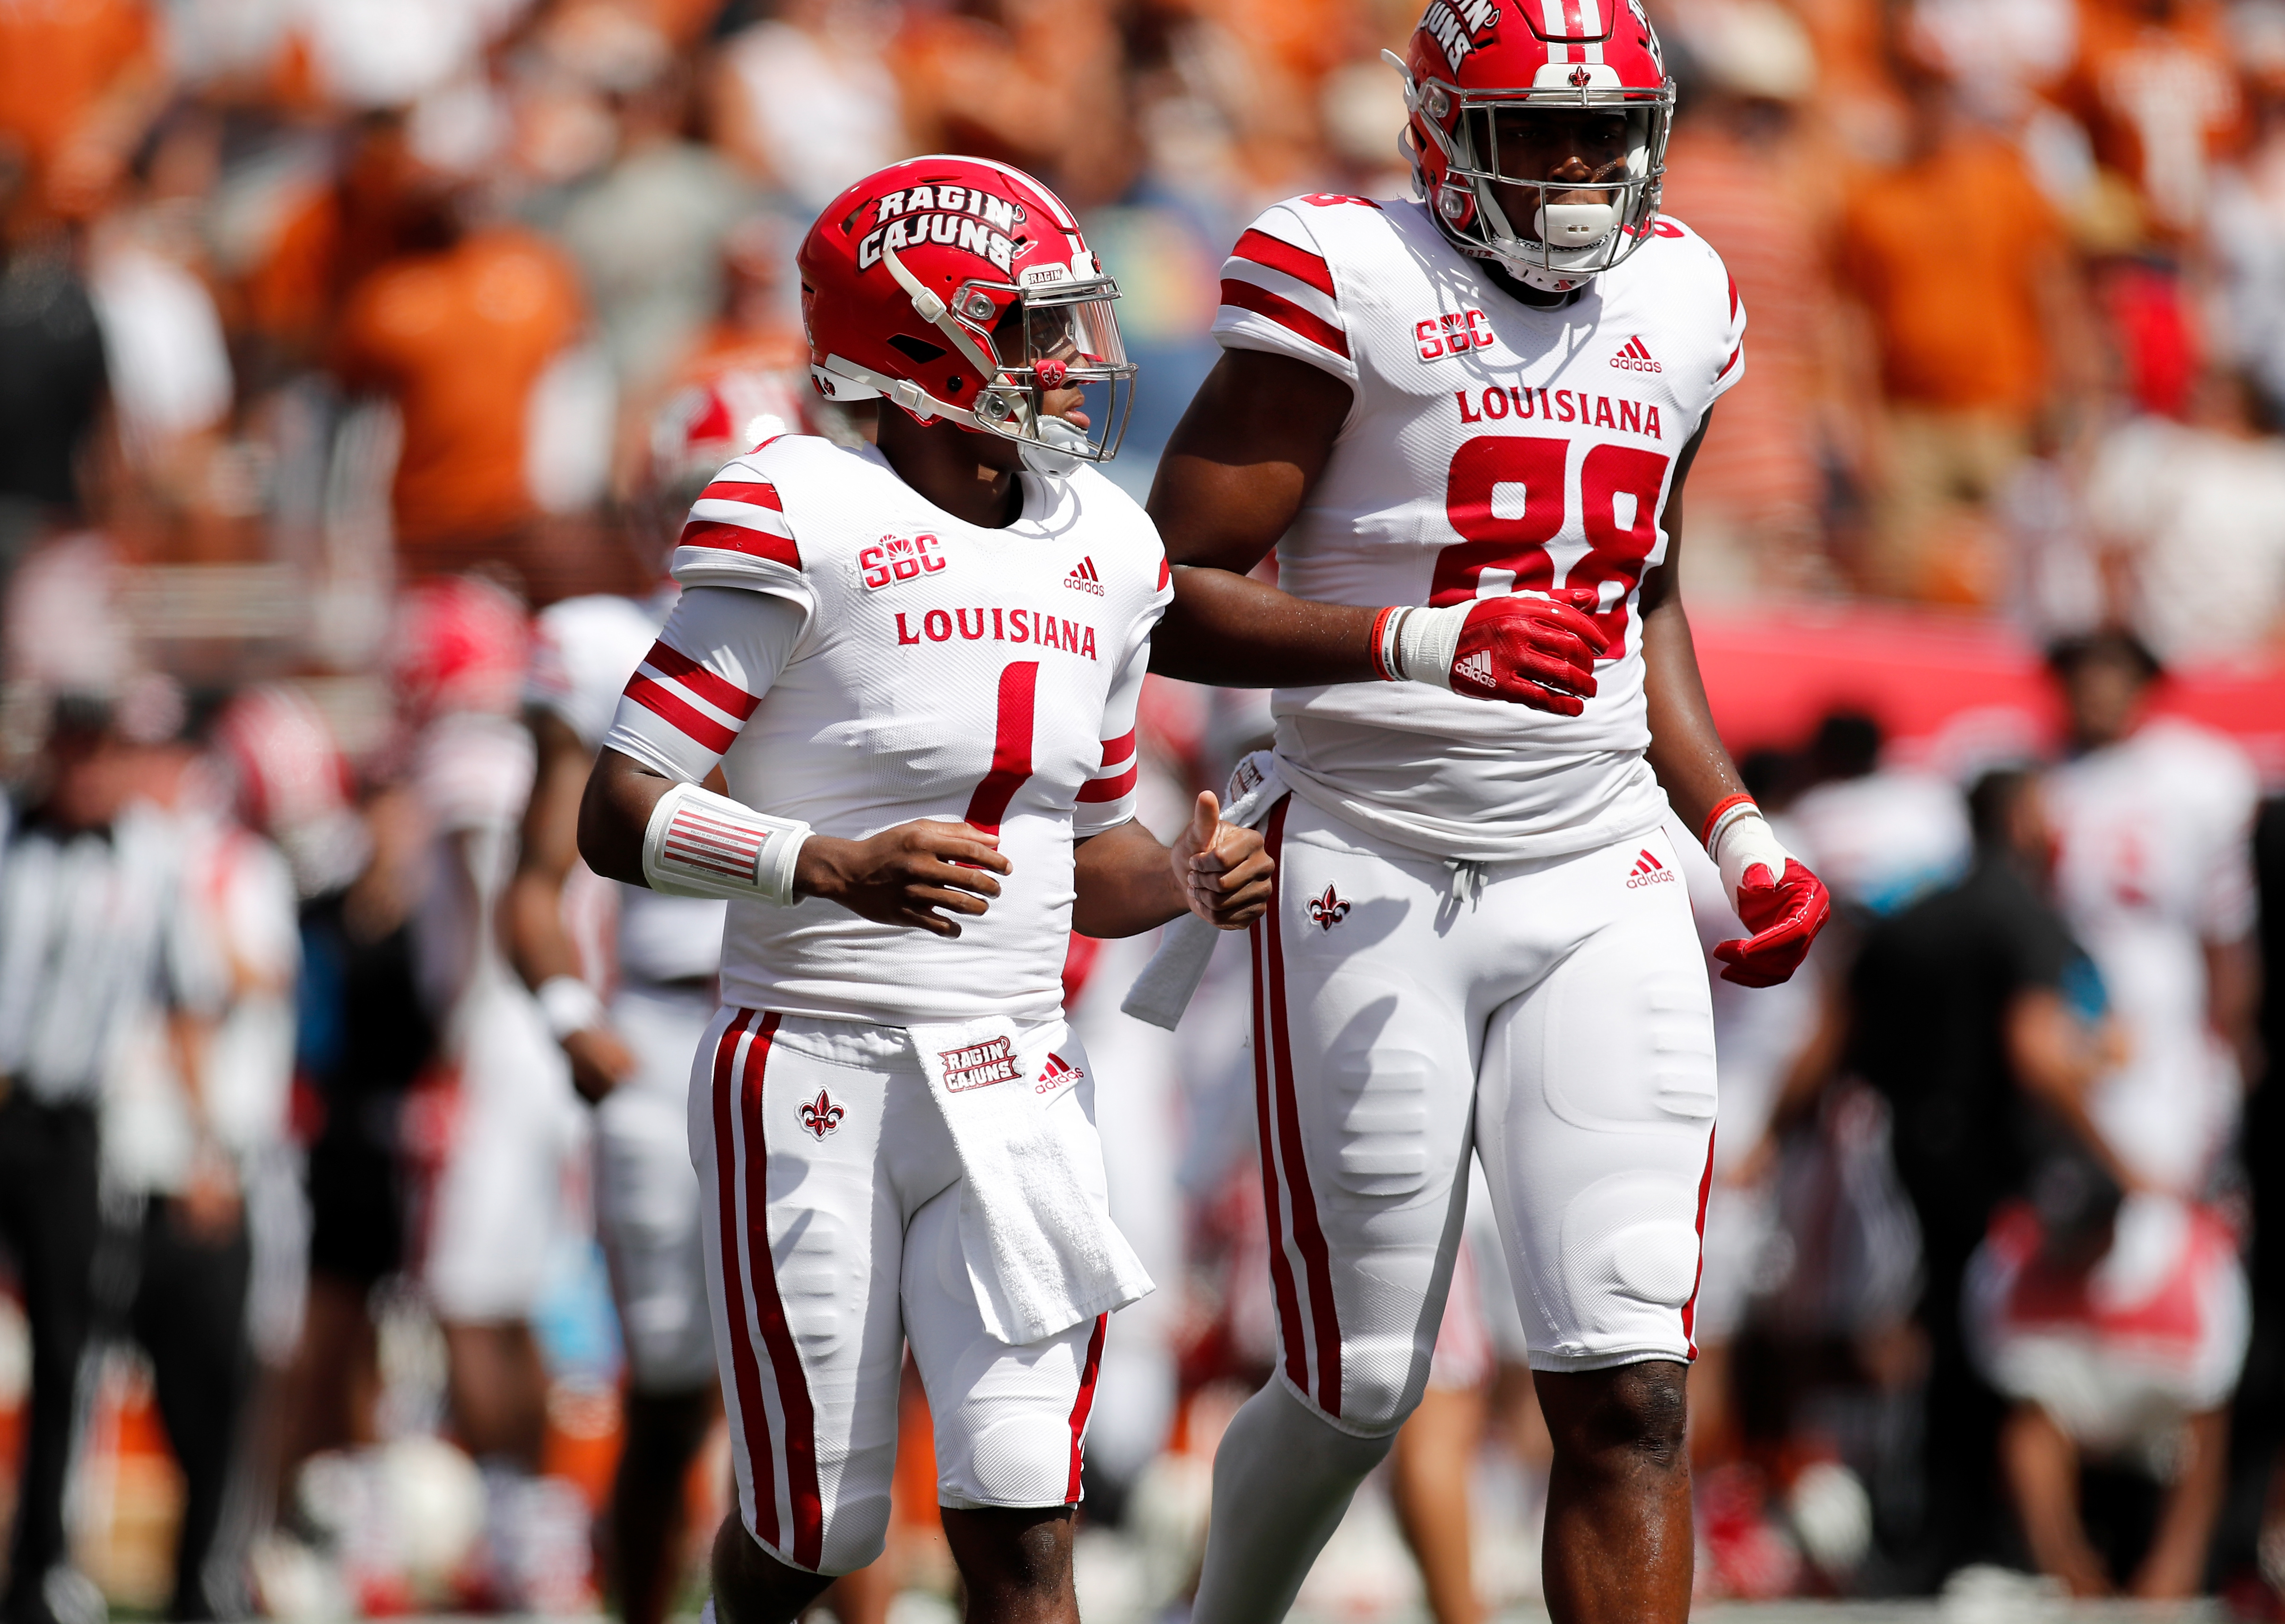 Levi Lewis of the Louisiana Ragin' Cajuns and Johnny Lumpkin take the field in the first quarter against the Texas Longhorns at Darrell K Royal-Texas Memorial Stadium on September 04, 2021 in Austin, Texas.